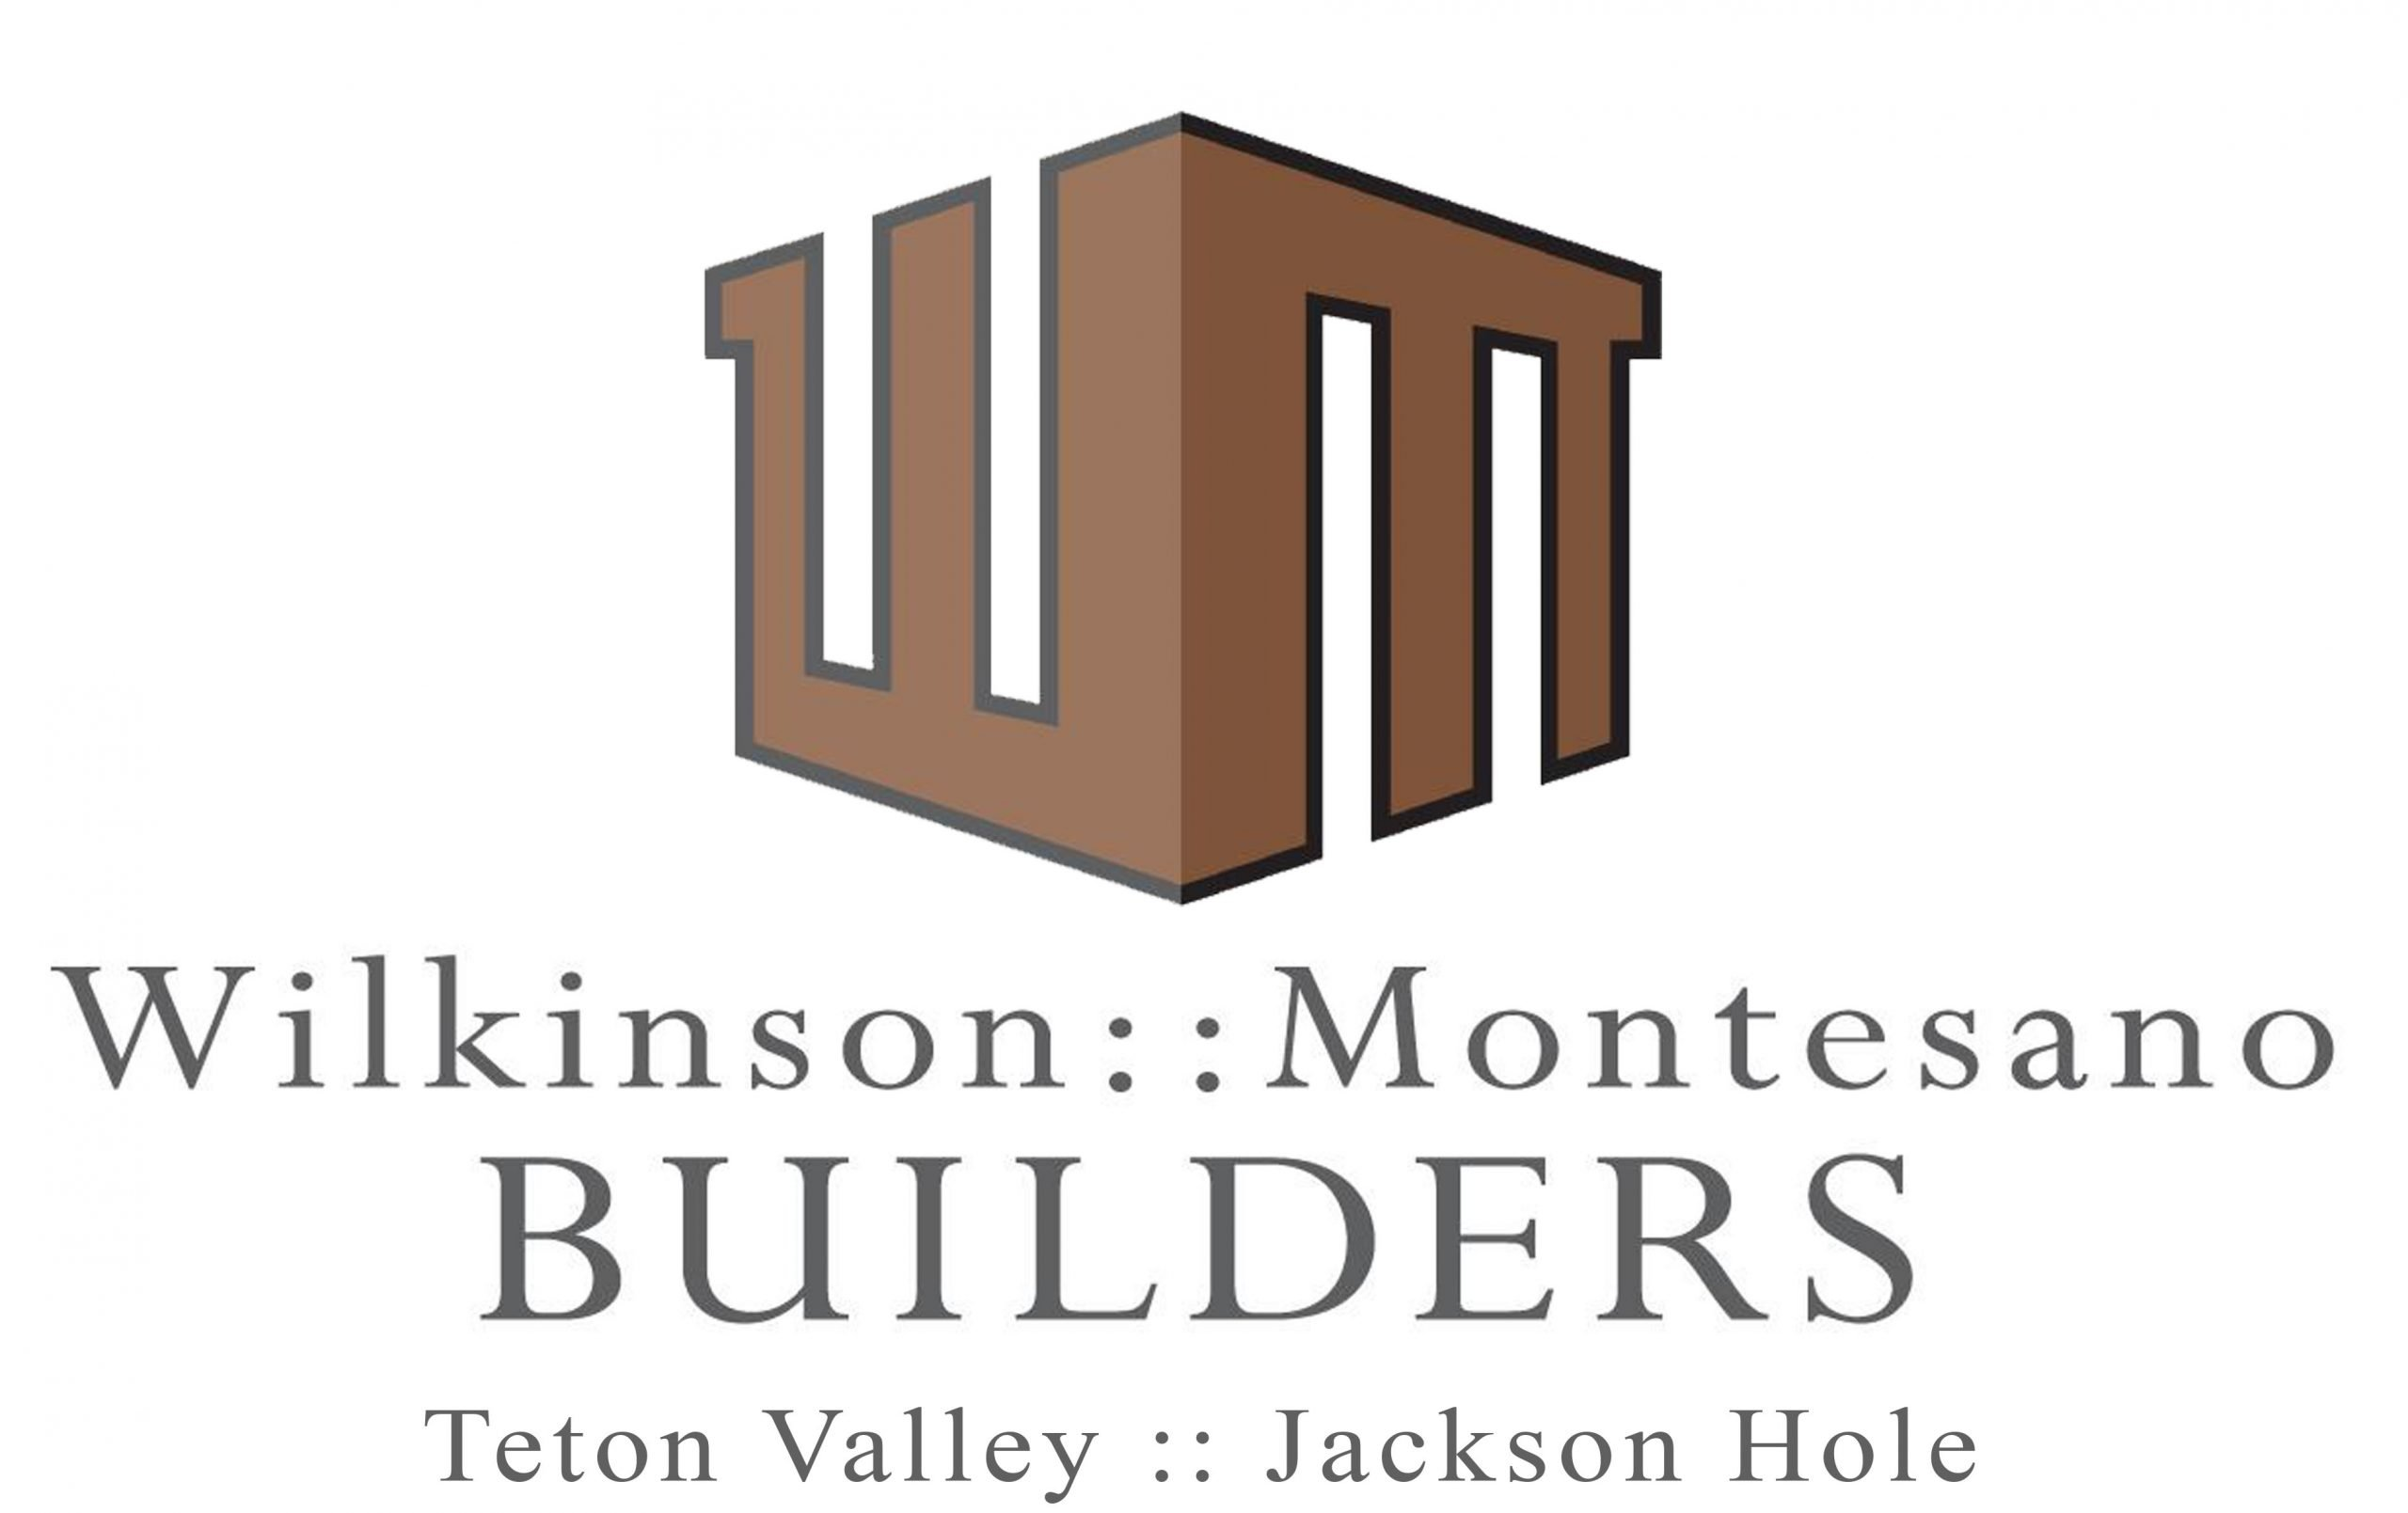 Wilkinson-Montesano Builders